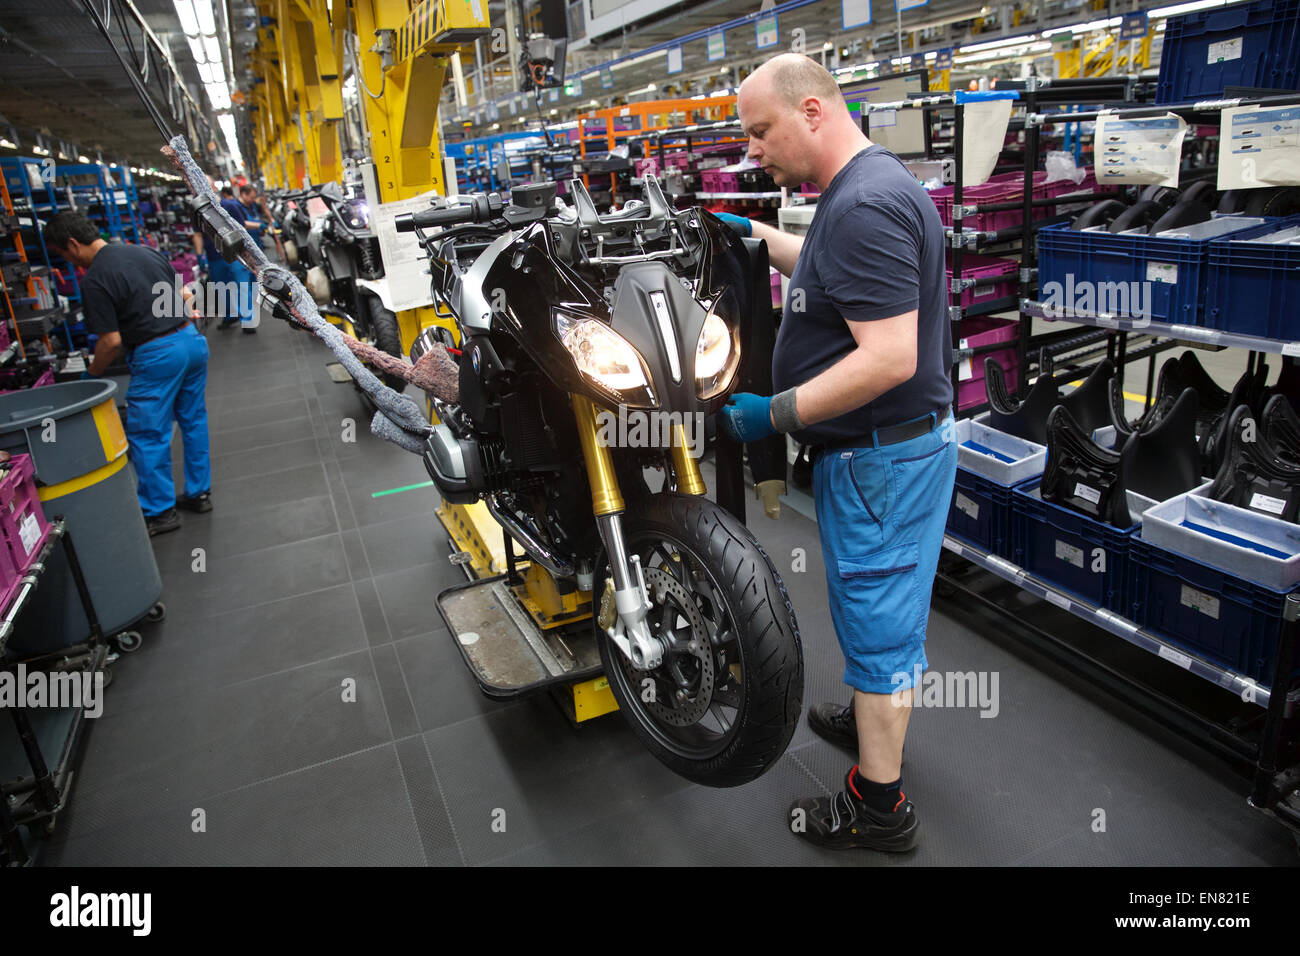 Bmw Motorcycle Factory Stock Photos & Bmw Motorcycle Factory